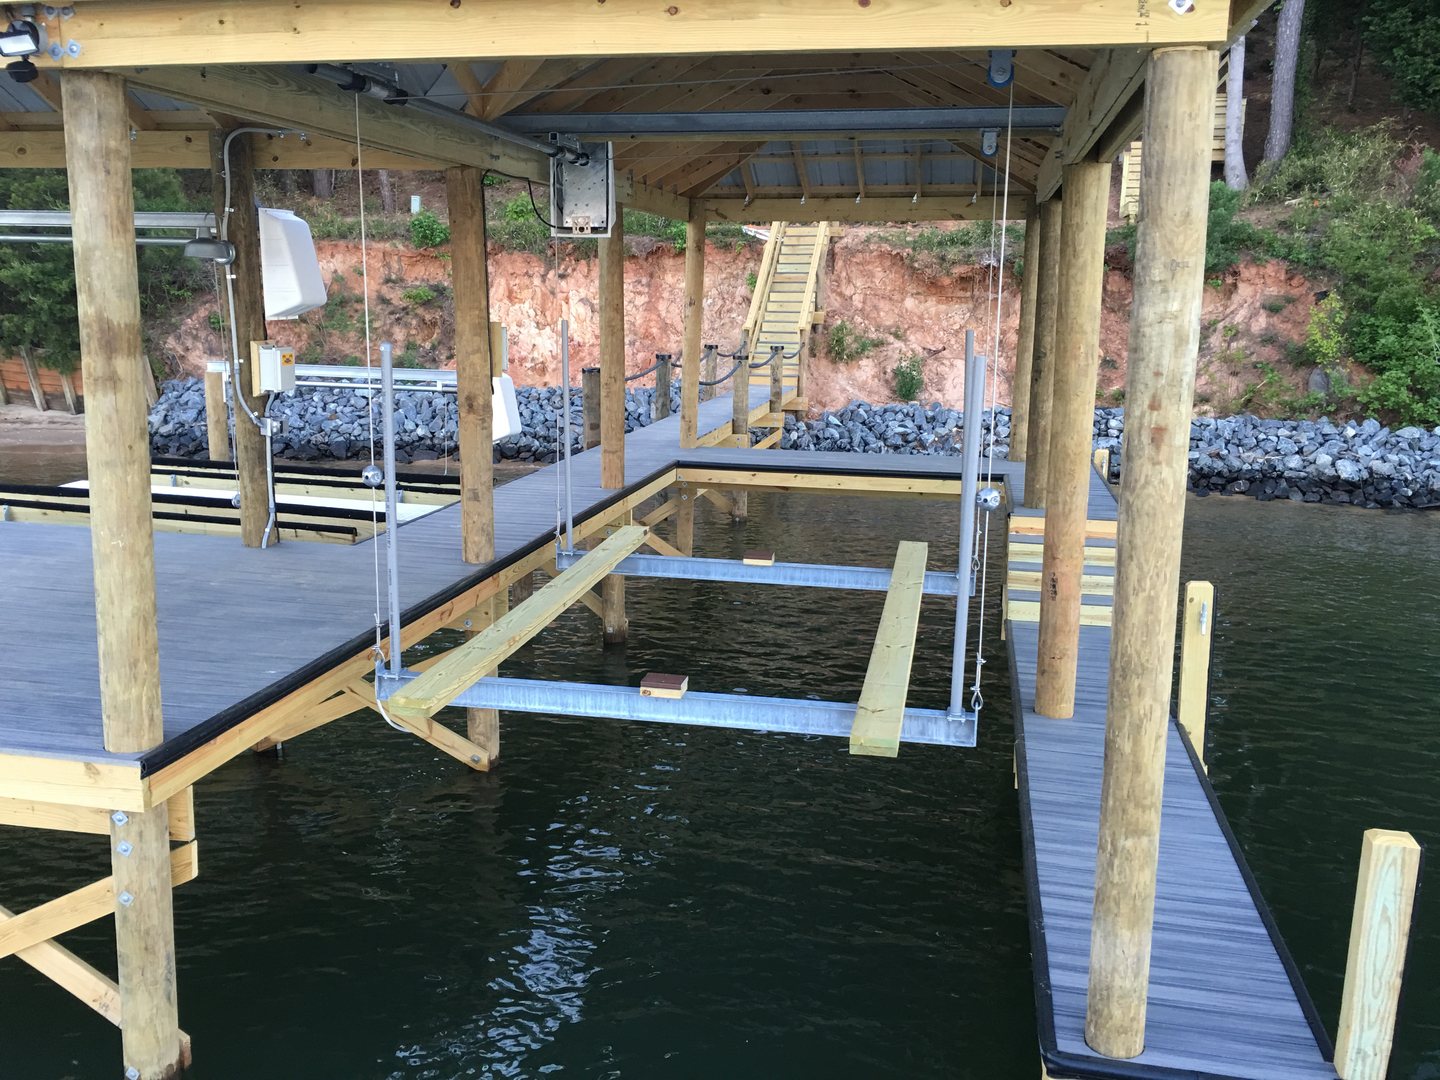 Qs Wiring Diagram For Boat Lift on